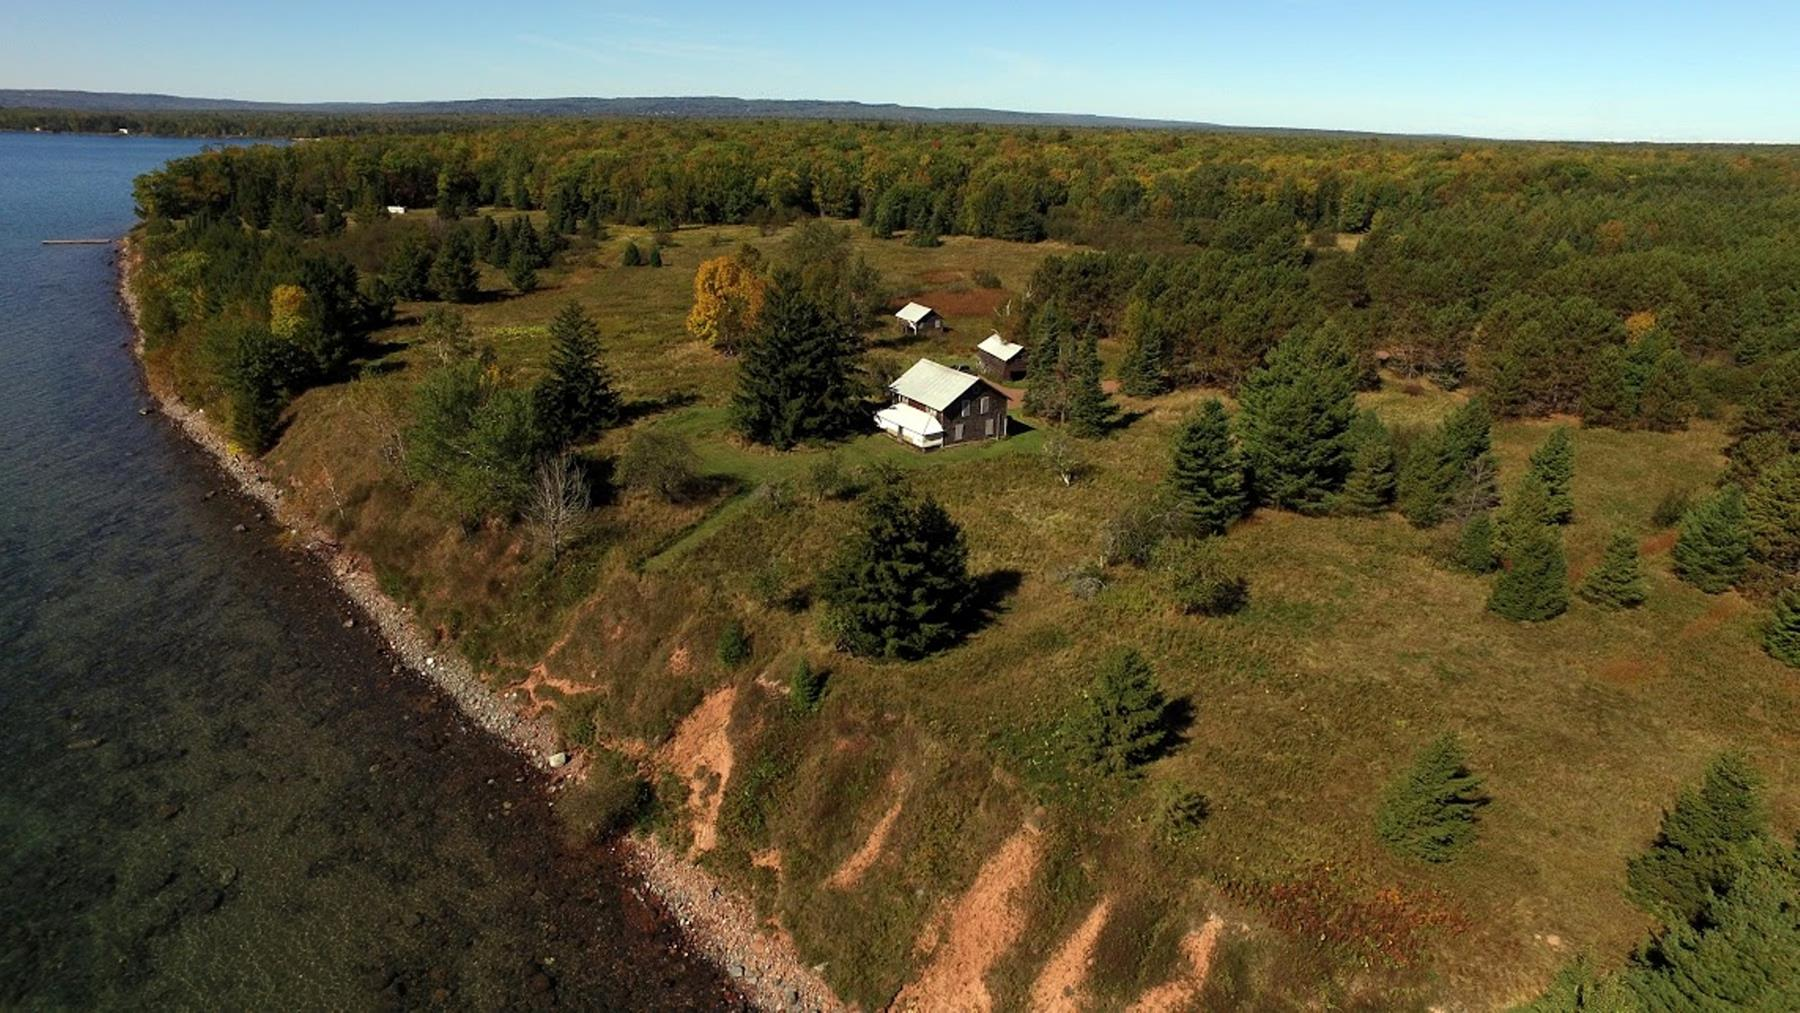 Land for Sale at Hagen Road, Madeline Island, La Pointe 1935-97 Hagen Road, La Pointe, Wisconsin, 54850 United States